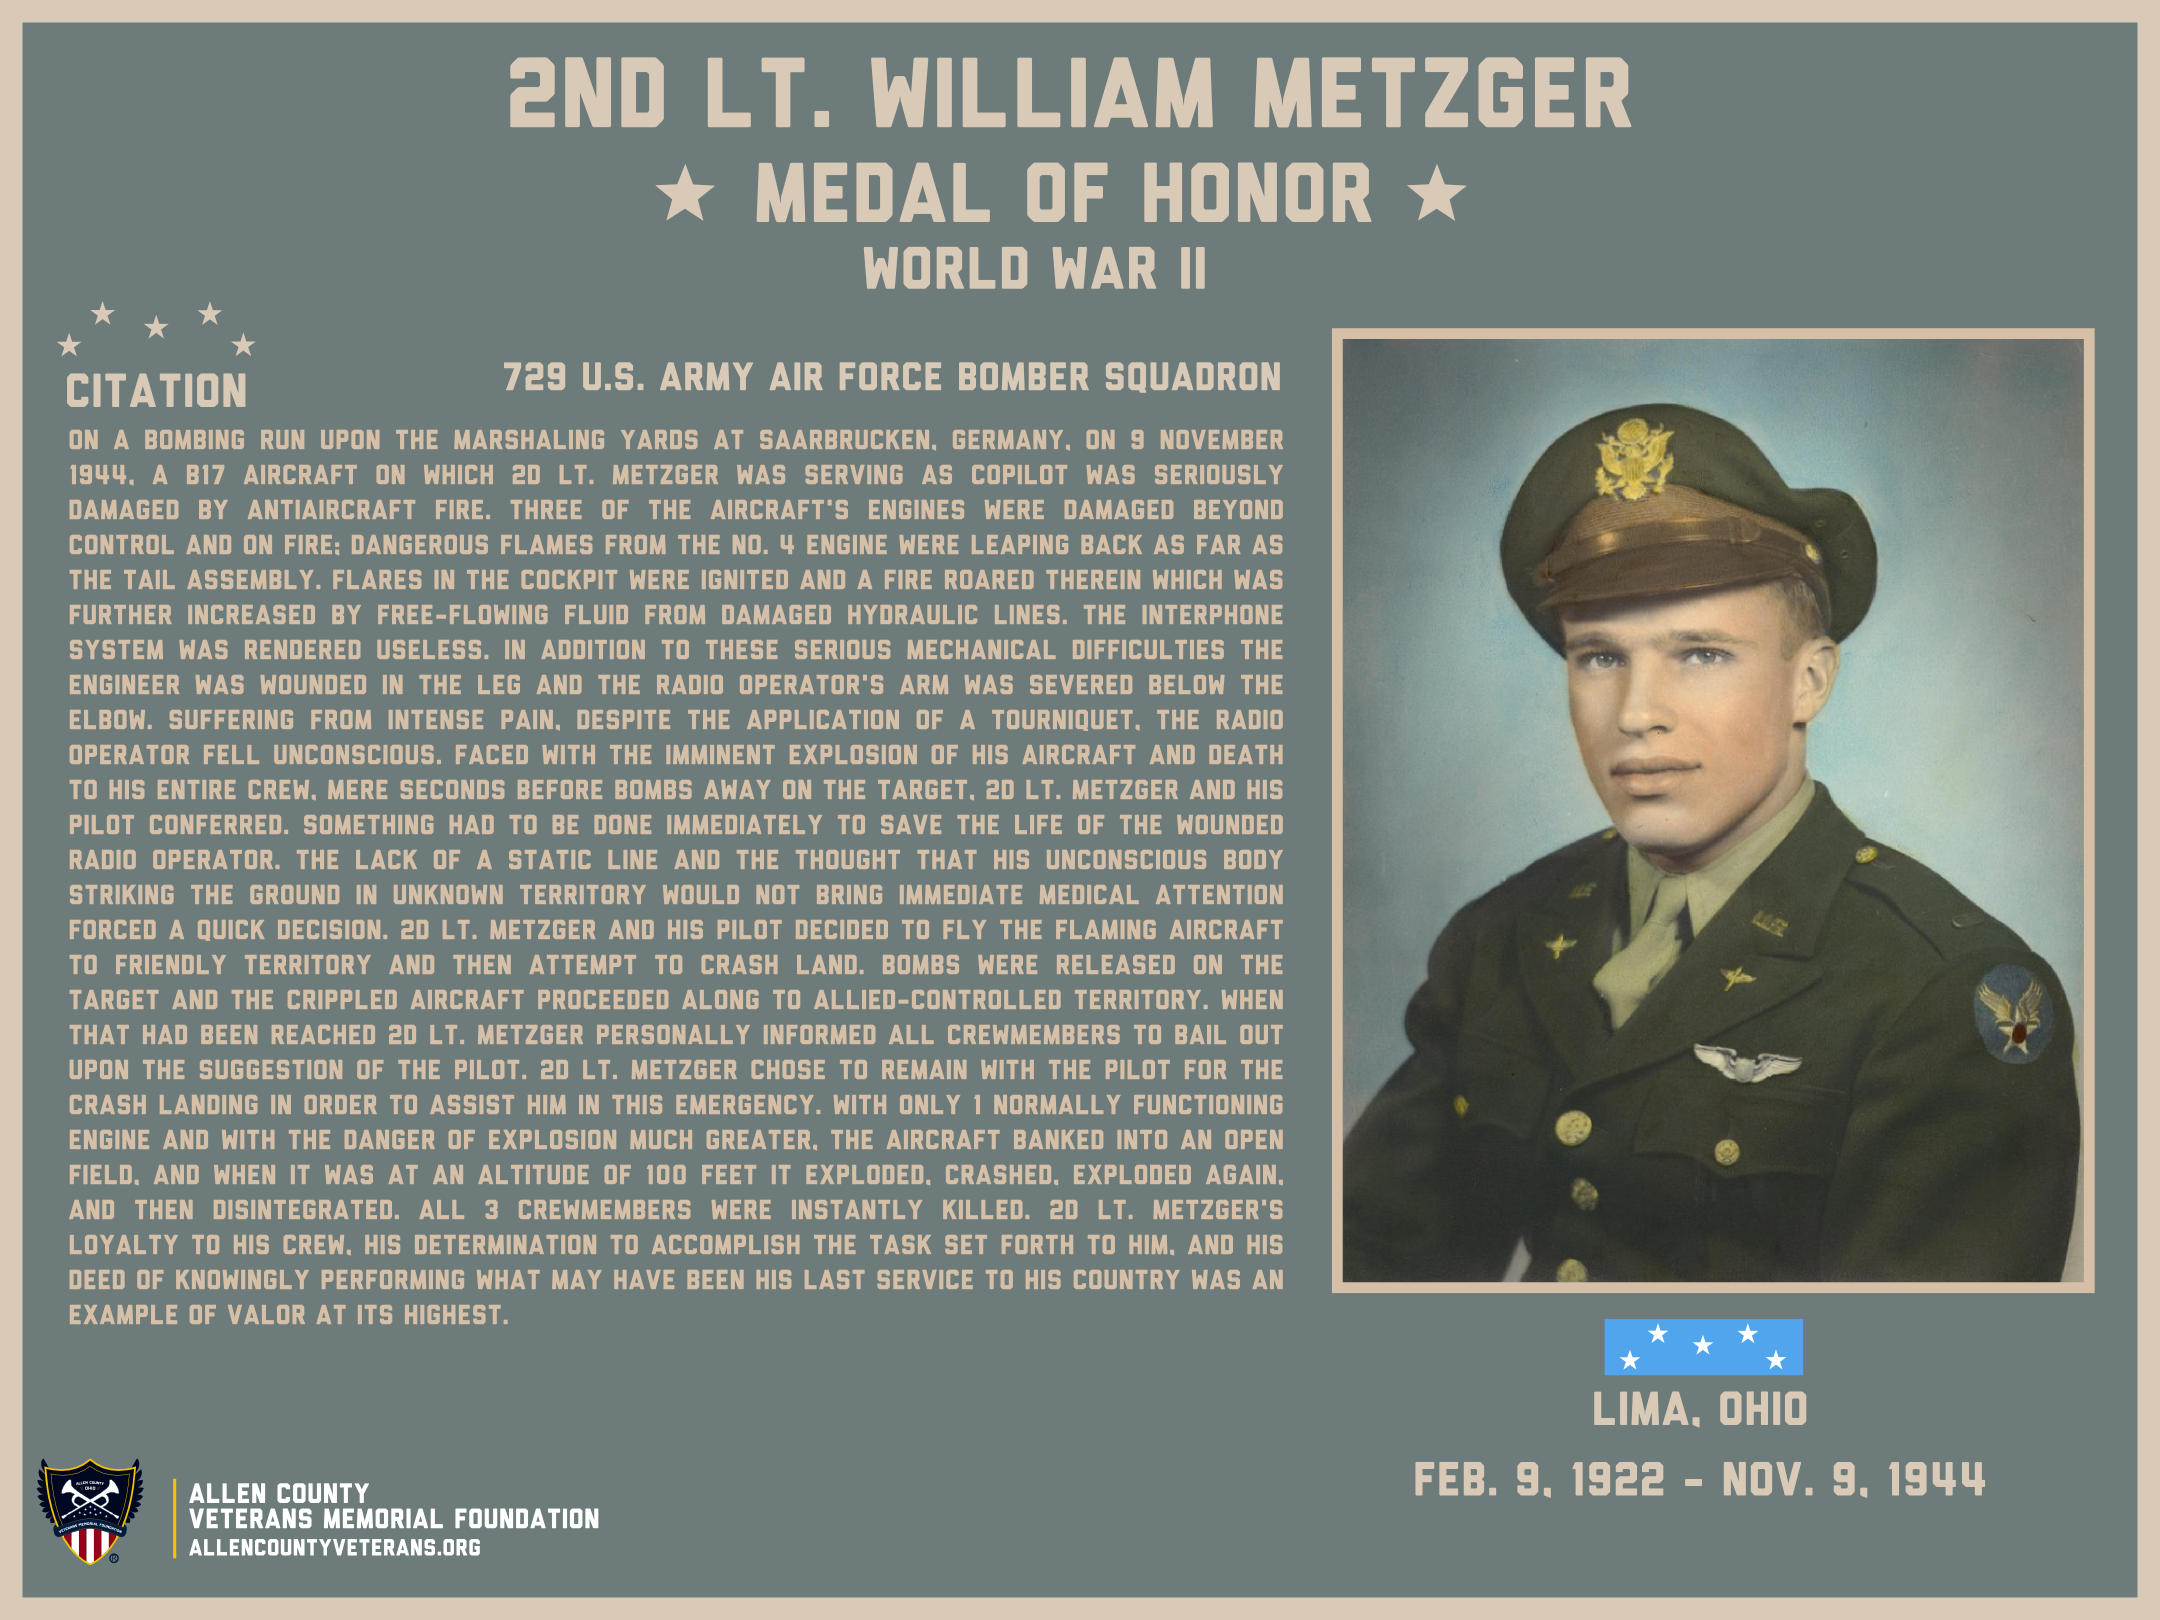 williammetzger